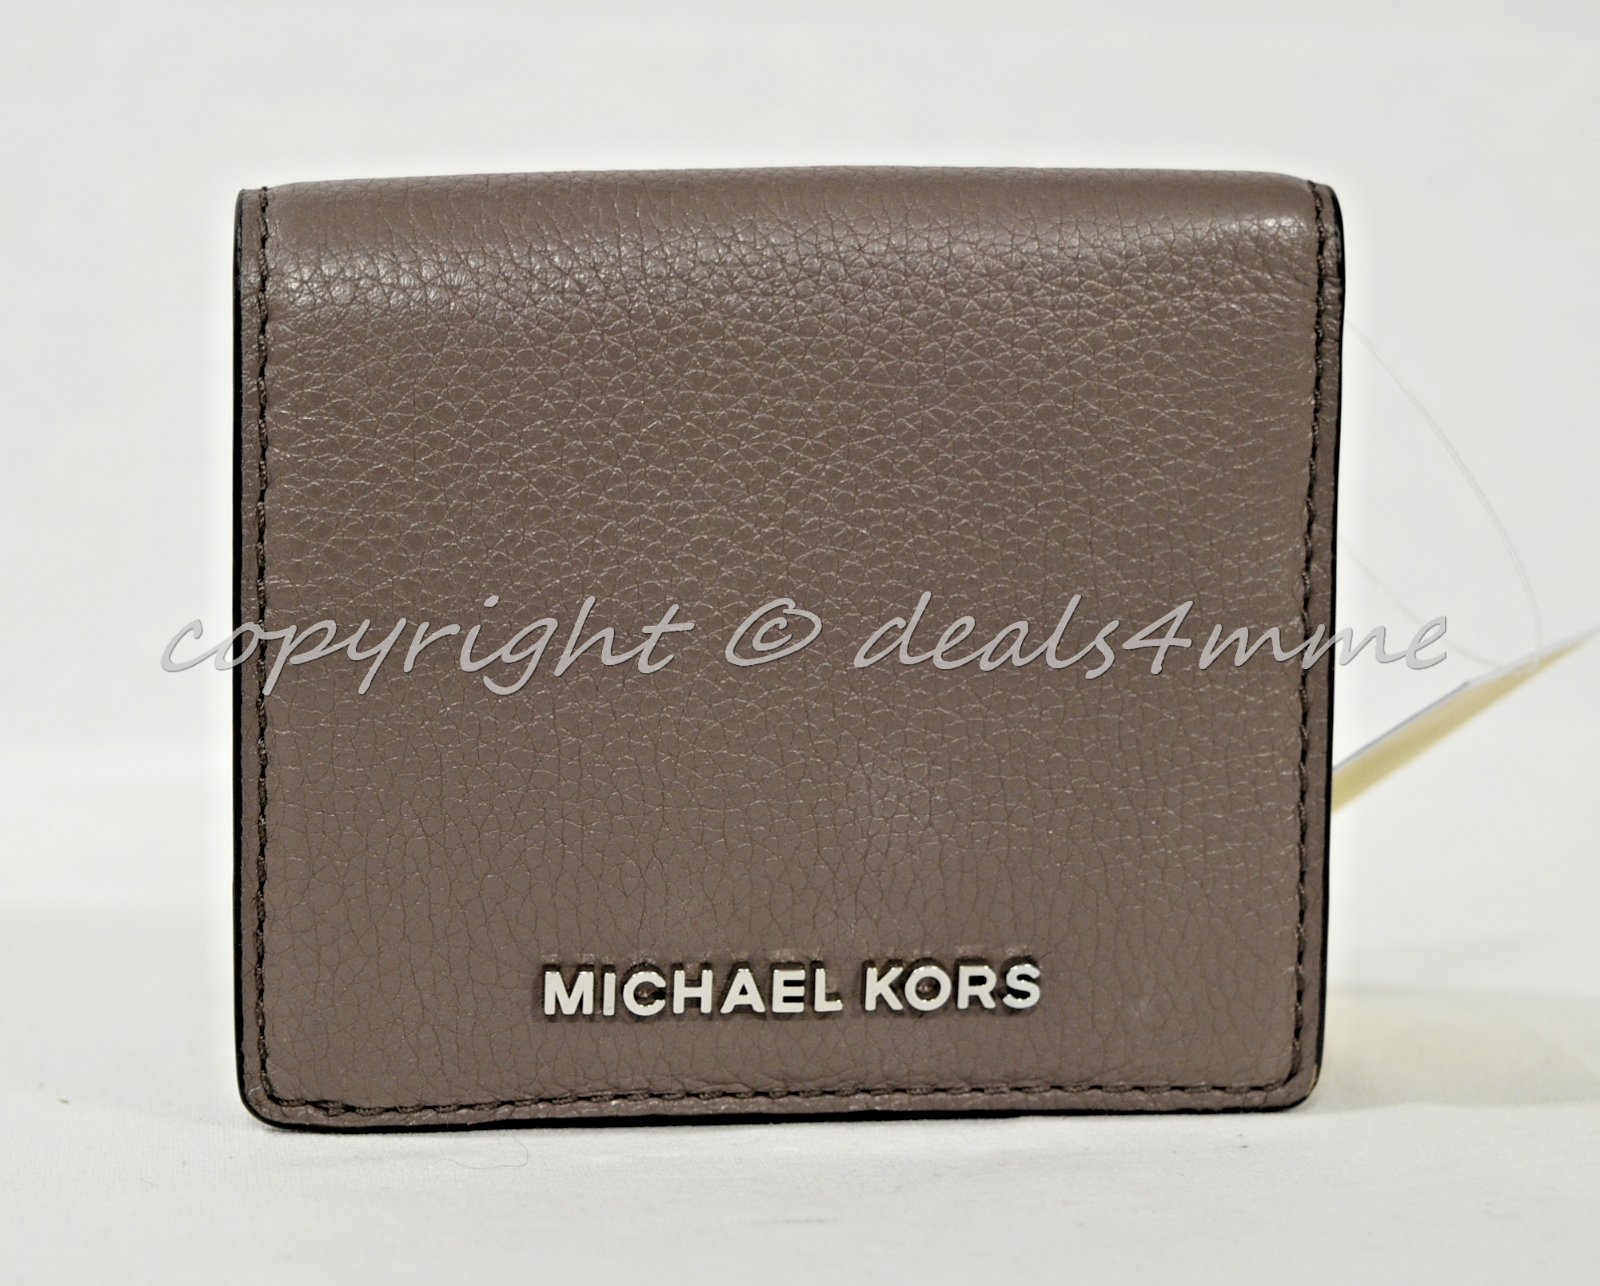 NWT Michael Kors Bedford Carryall Card Case in Cinder Grey Pebbled Leather